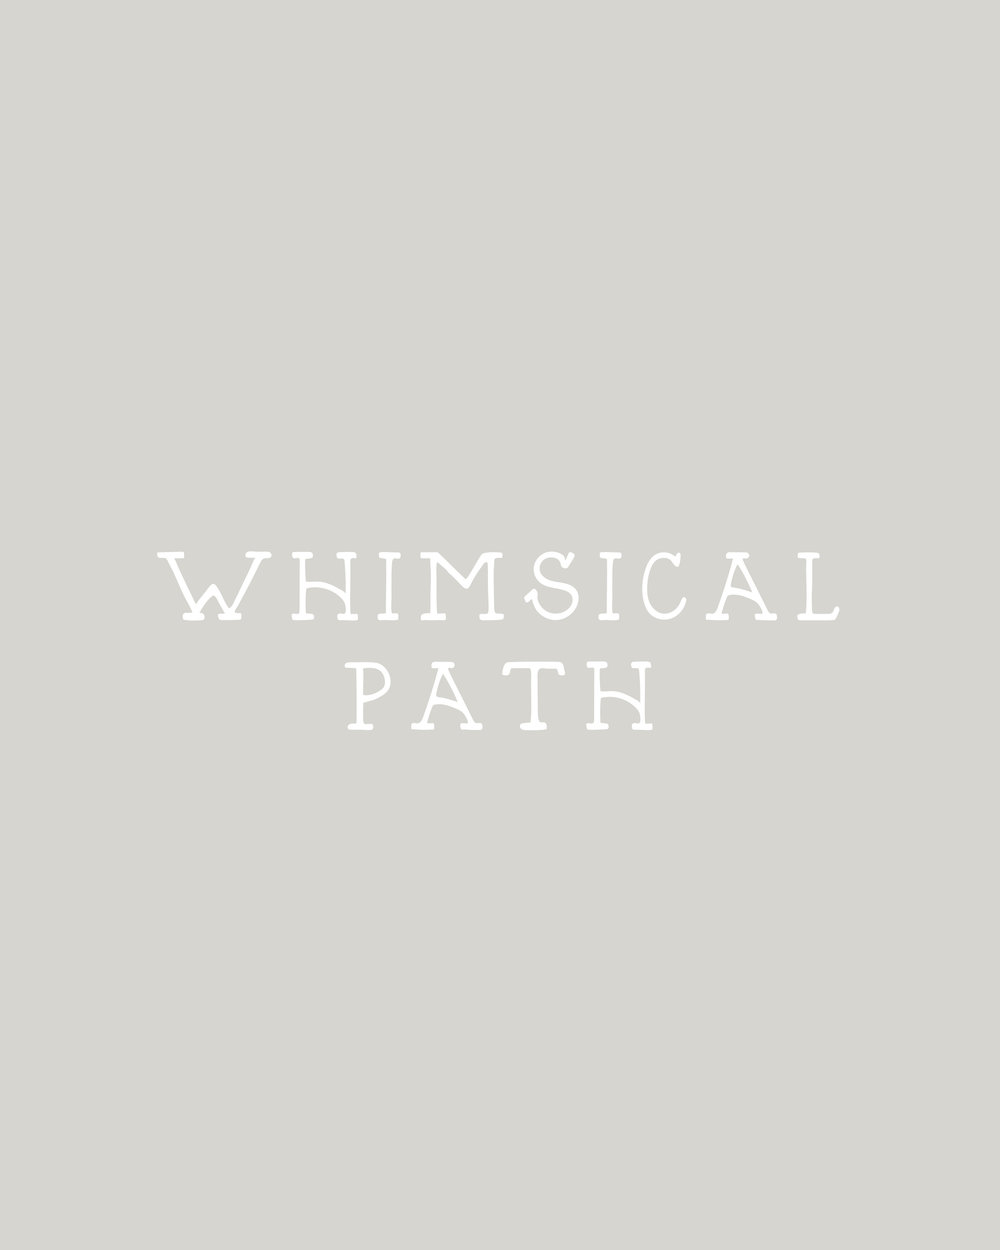 In The Shop: Handmade Fonts | Whimsical Path by Britt Fabello | Sea of Atlas